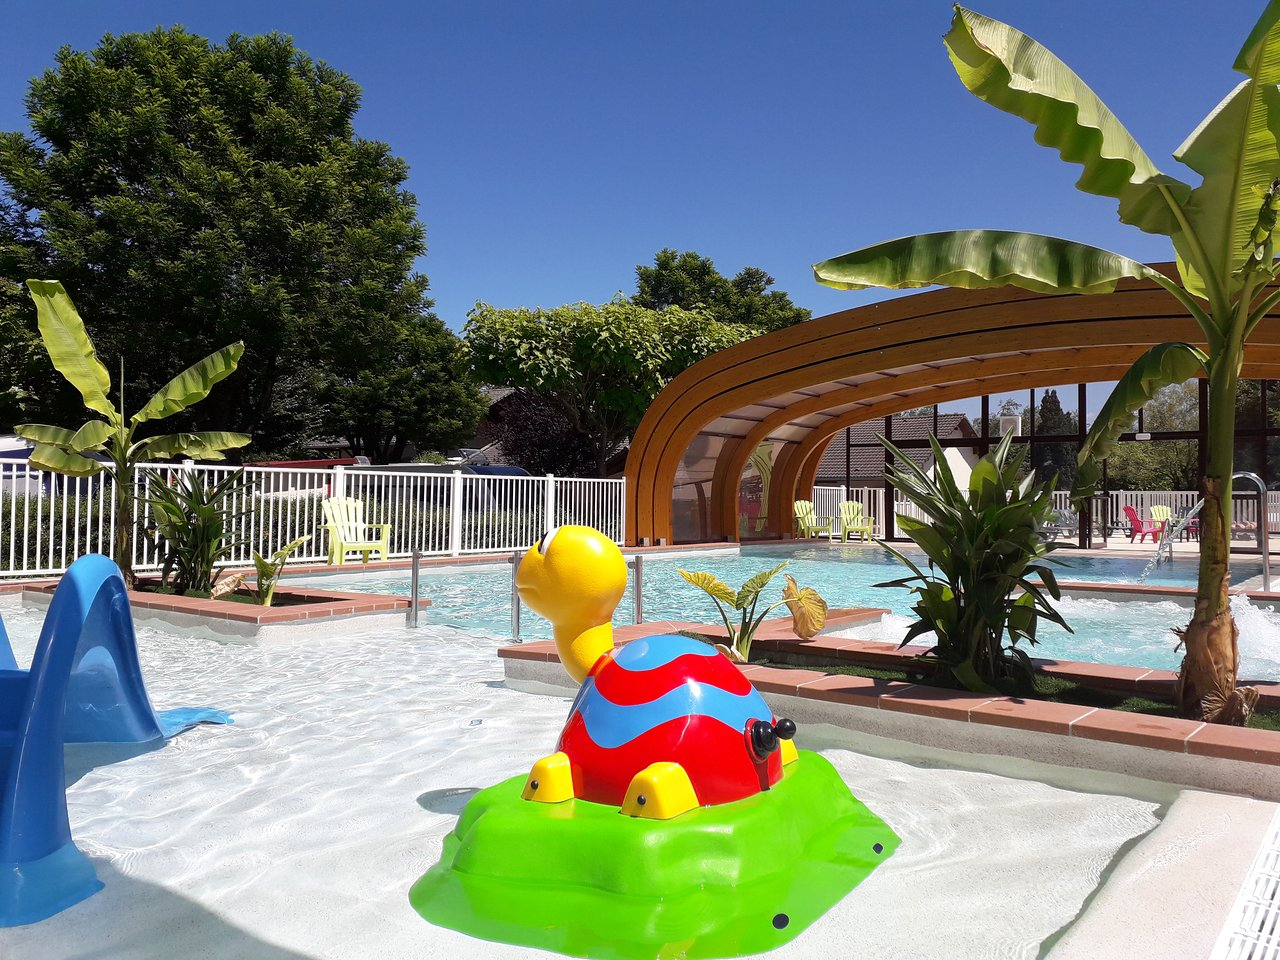 Le Coin Tranquille - Campground Reviews (Les Abrets, France ... intérieur Piscine Les Abrets